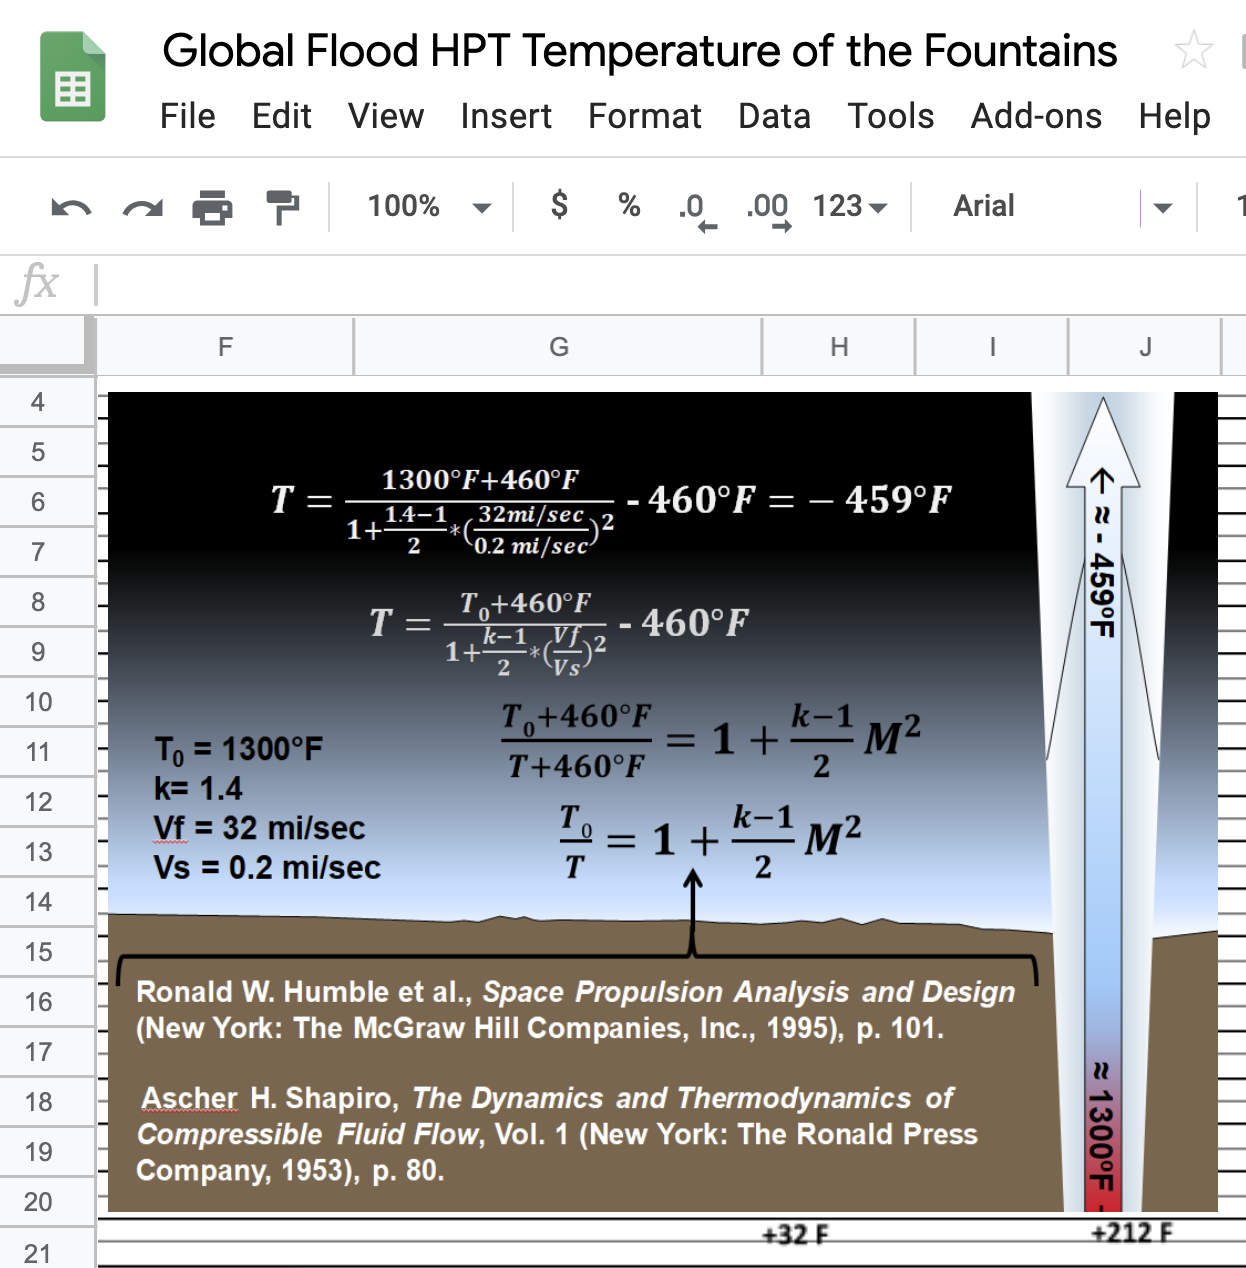 HPT spreadsheet to estimate the temperatures of the fountains of the great deep